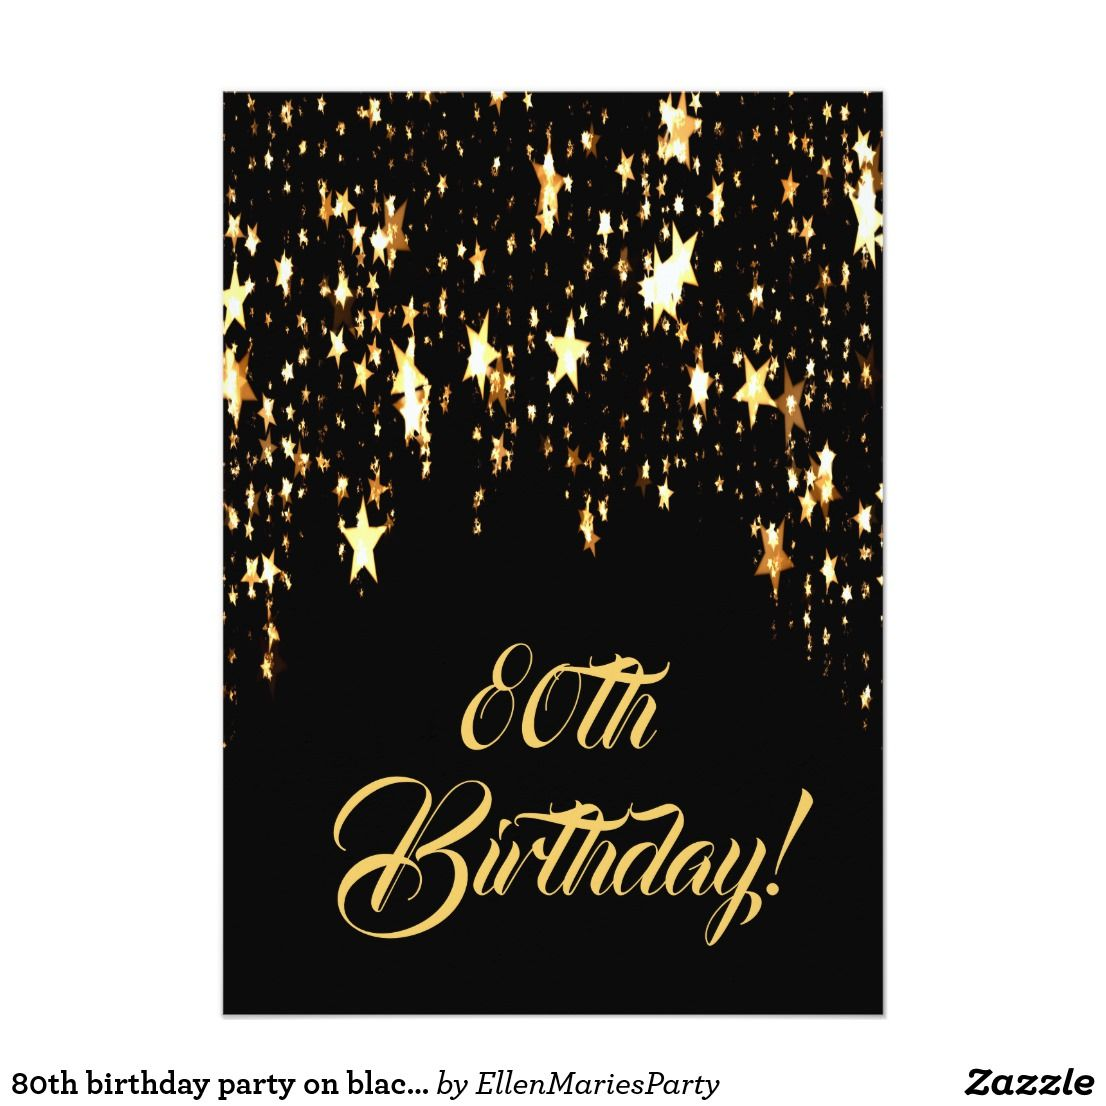 80th Birthday Party On Black With Shining Stars Invitation Elegant Classic Glamorous And Feminine Style A Background